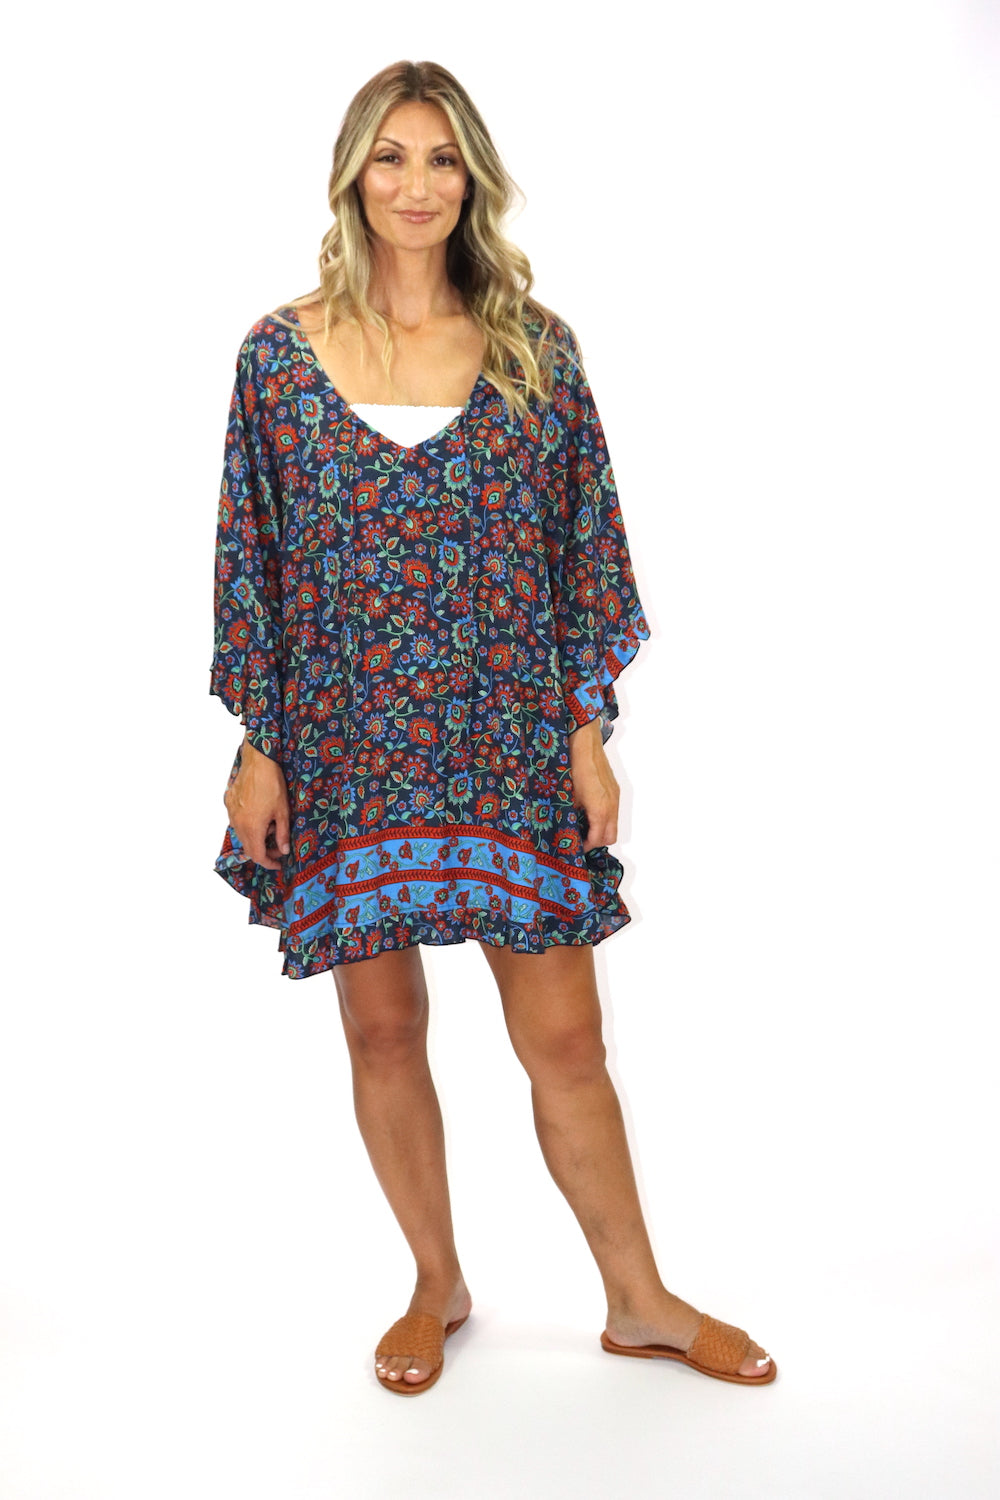 Set Free Batwing Top/Dress In Marocco